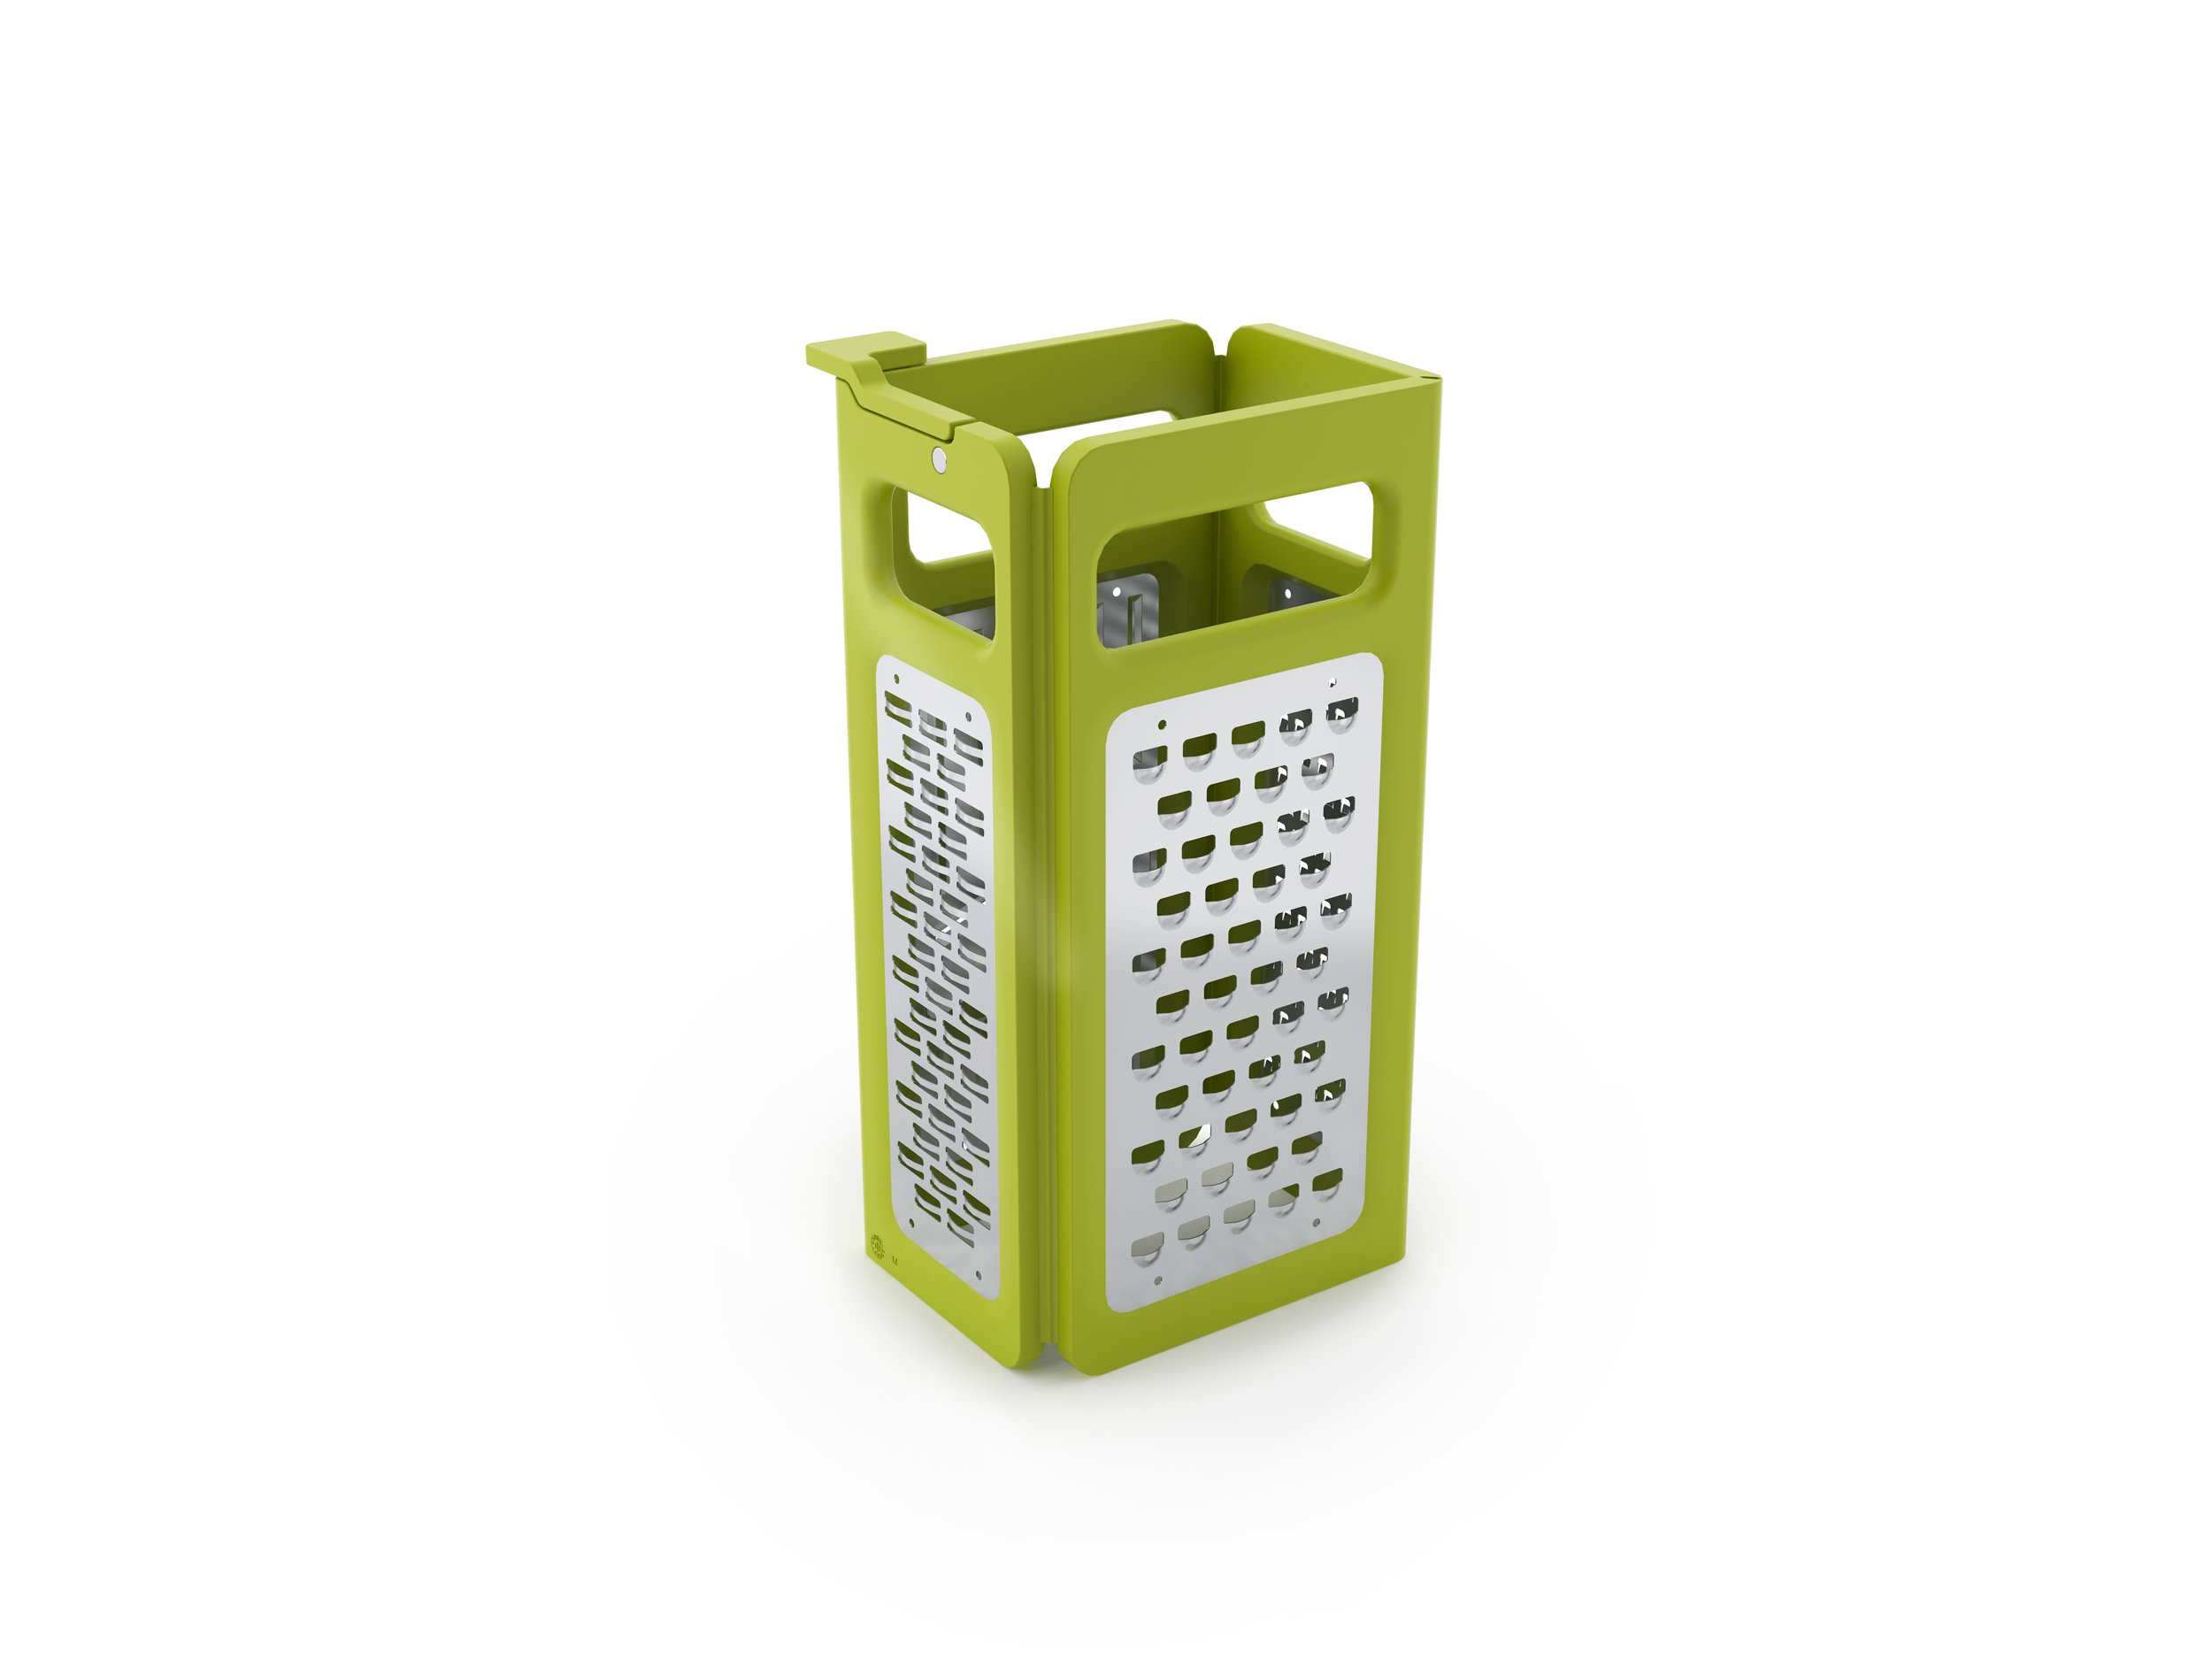 Collapsable Space Saving Grater